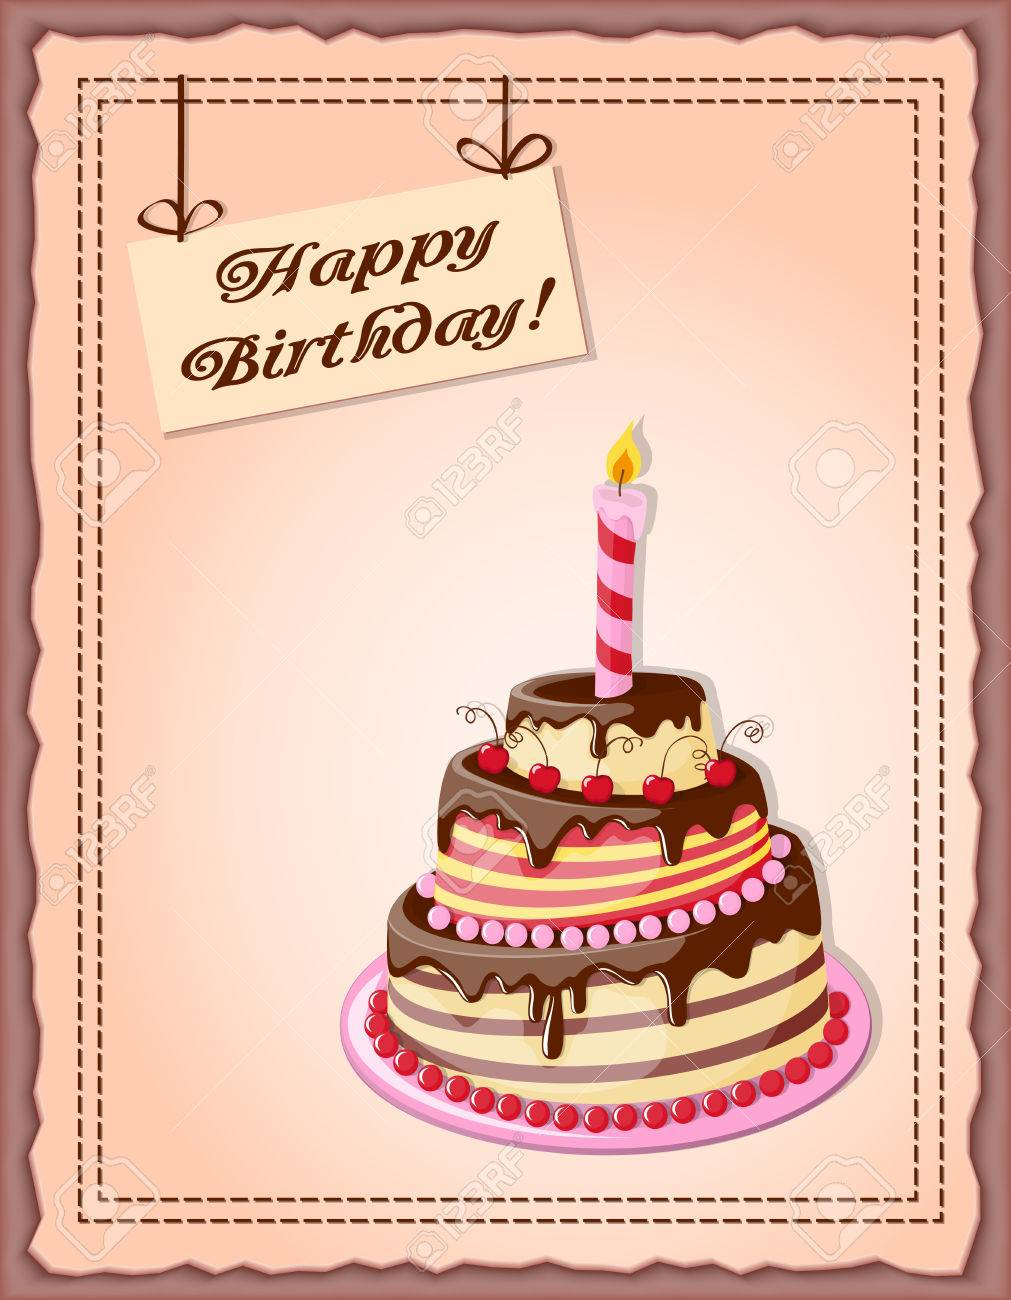 Magnificent Festive Colorful Card With Text Happy Birthday Cake Tier Funny Birthday Cards Online Alyptdamsfinfo